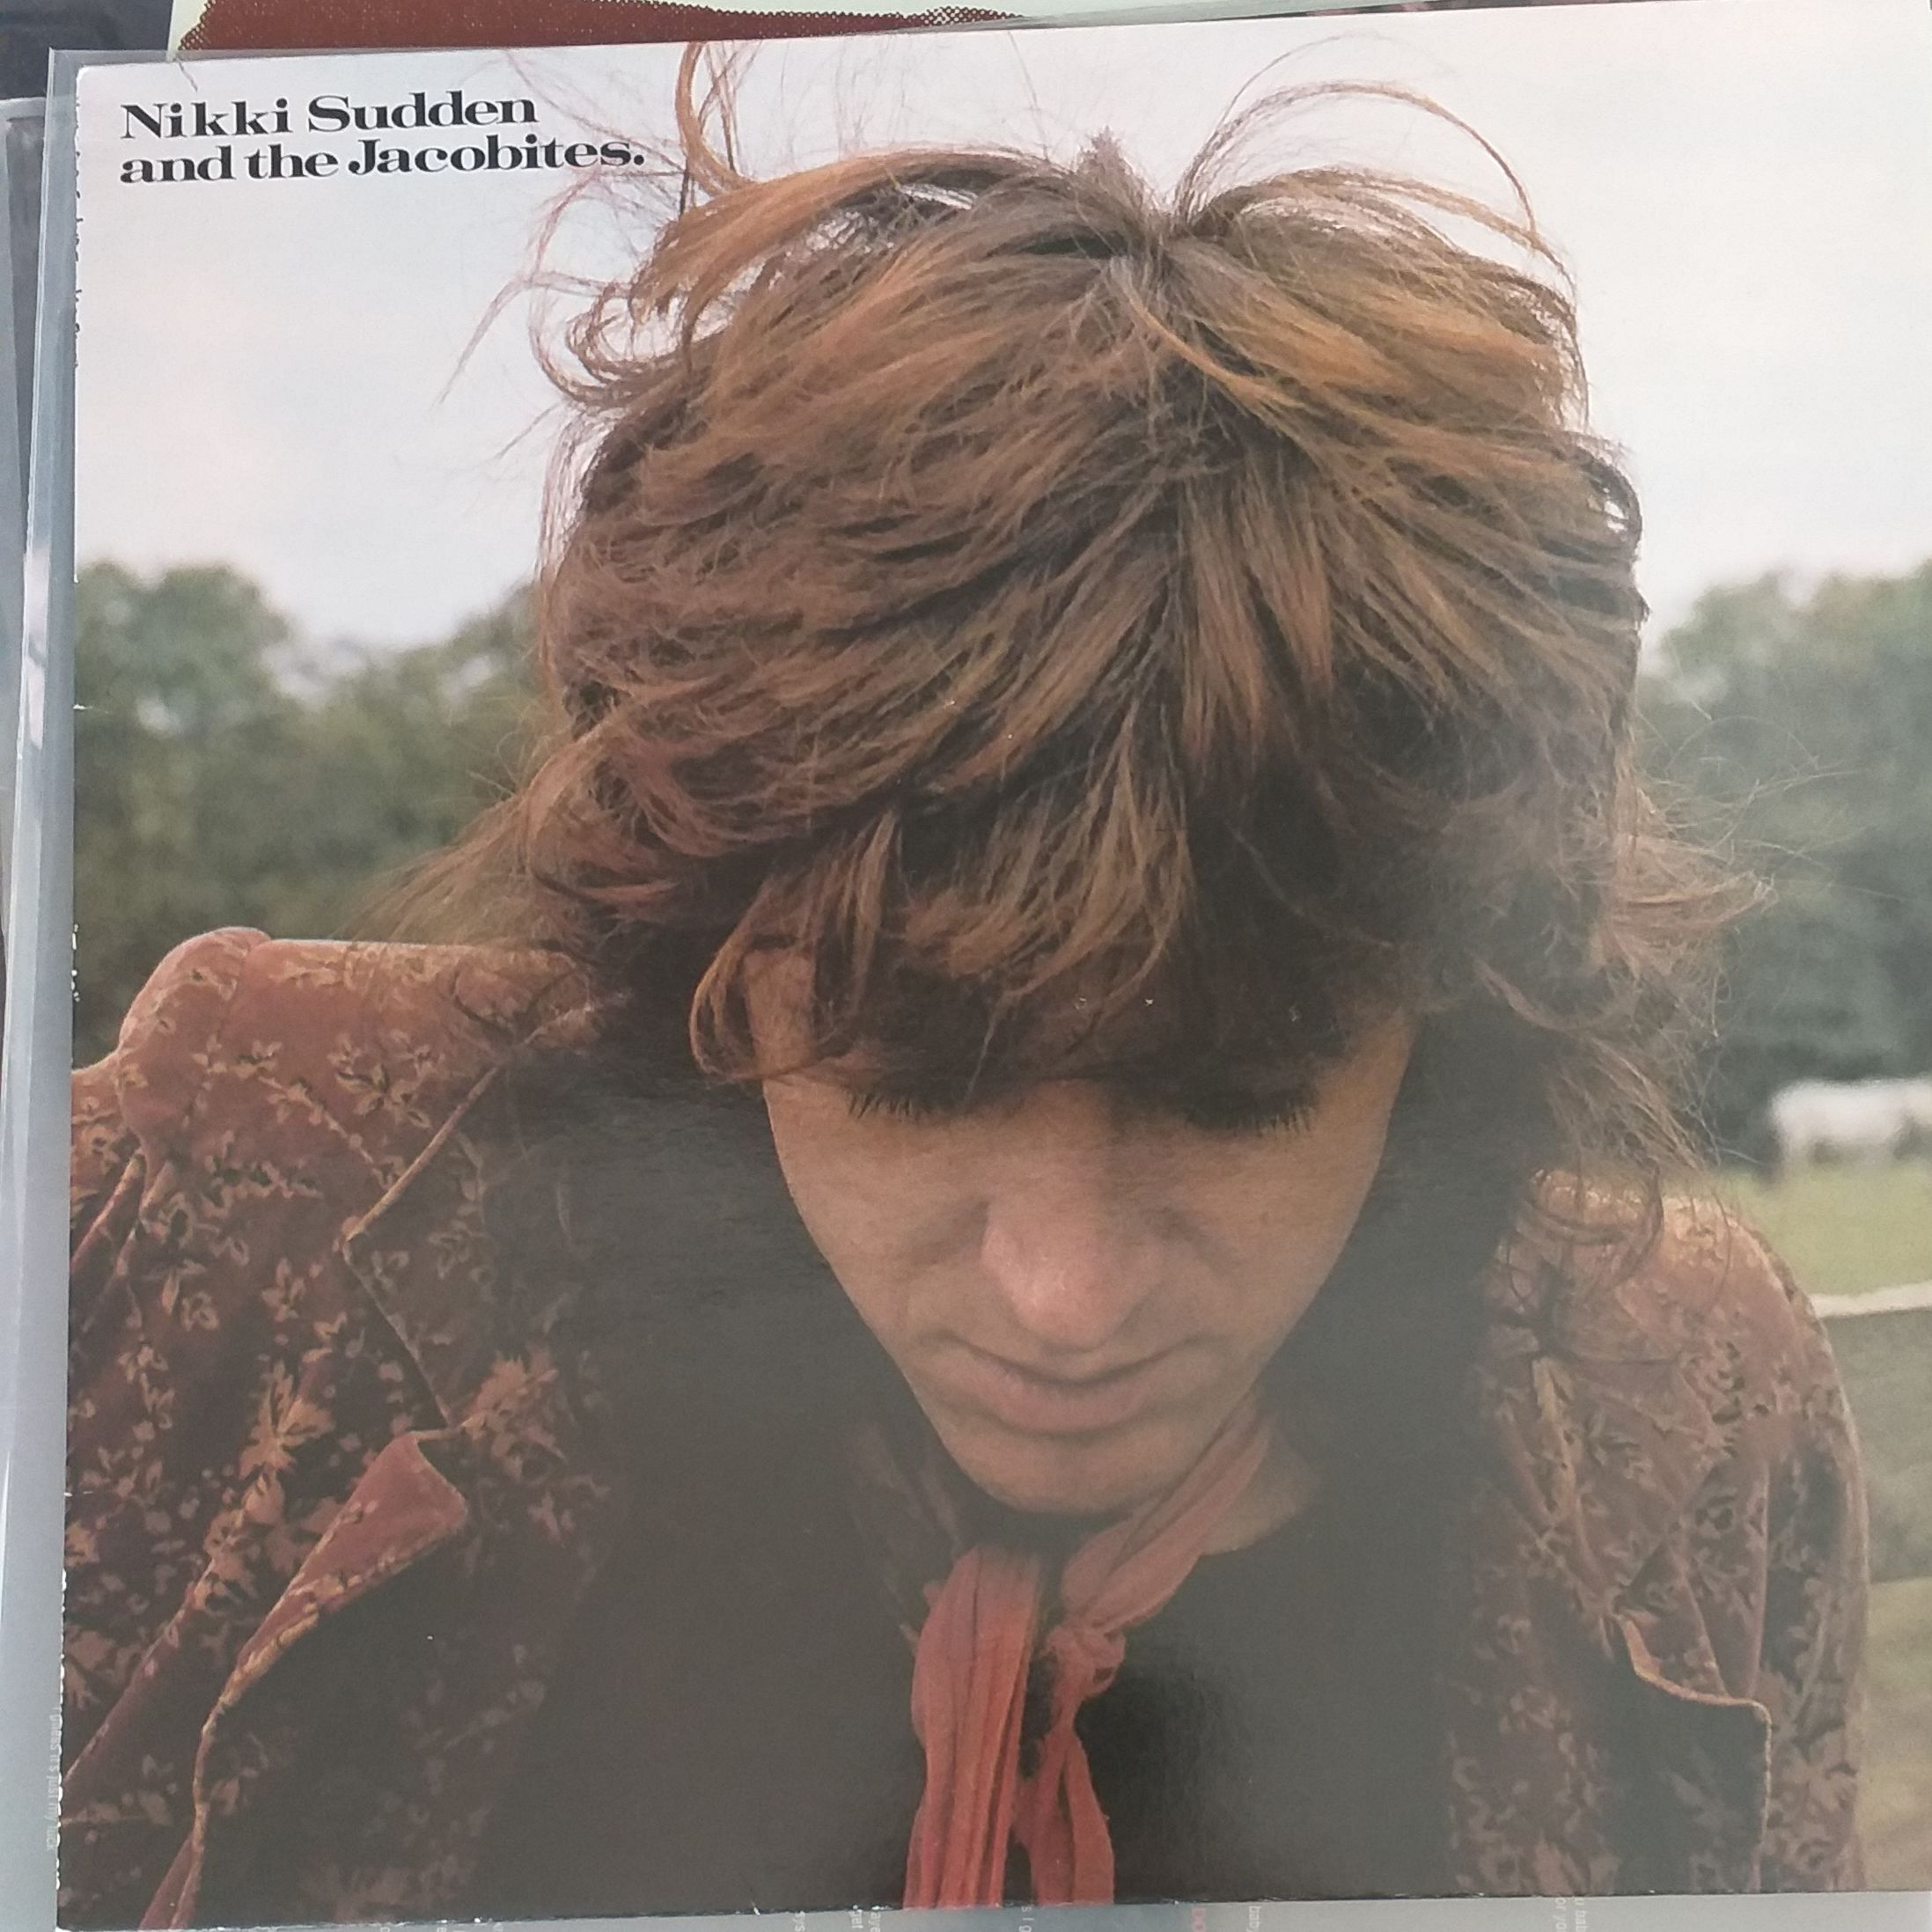 Nikki Sudden and the jacobites Texas LP undefined